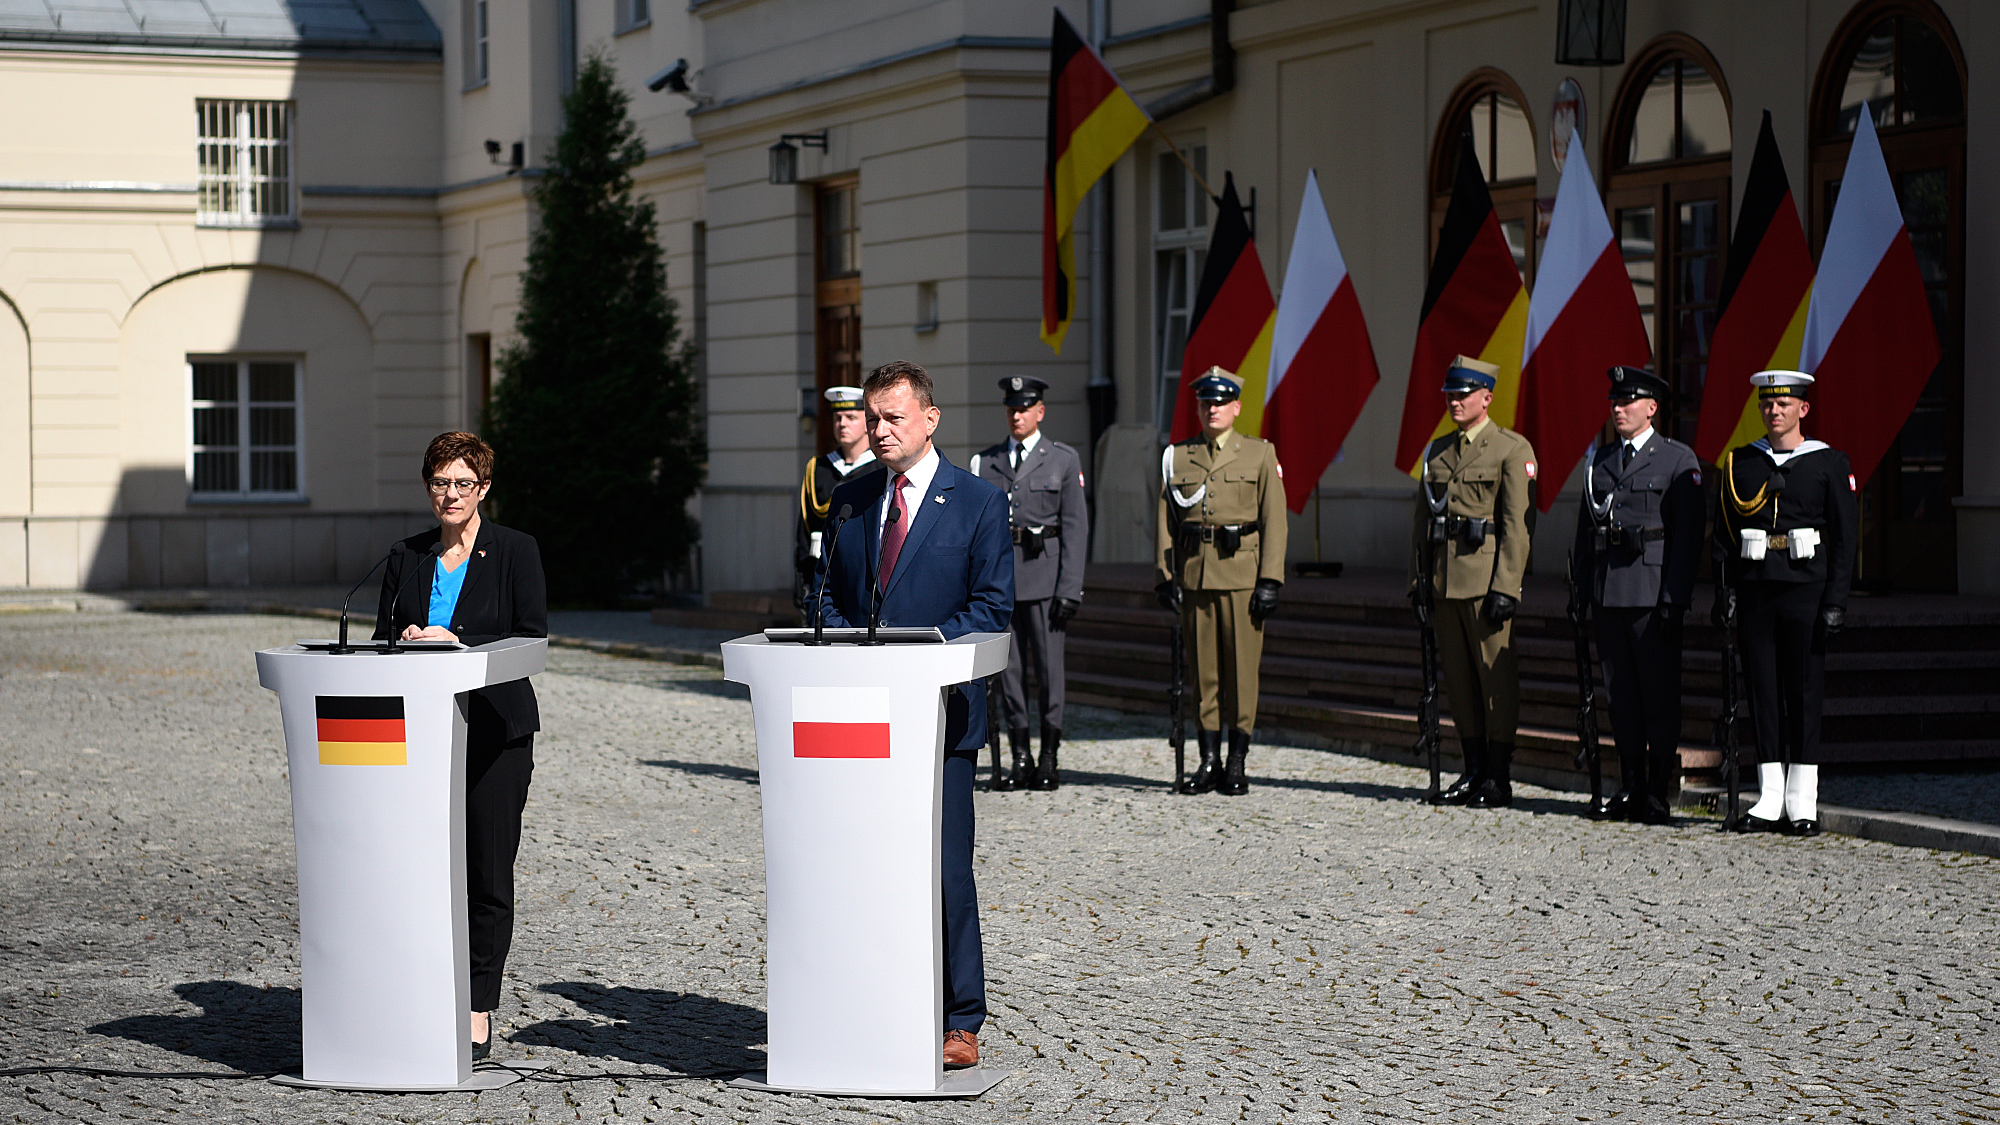 WI Daily News – Polish and German Ministers of Defence met in Warsaw